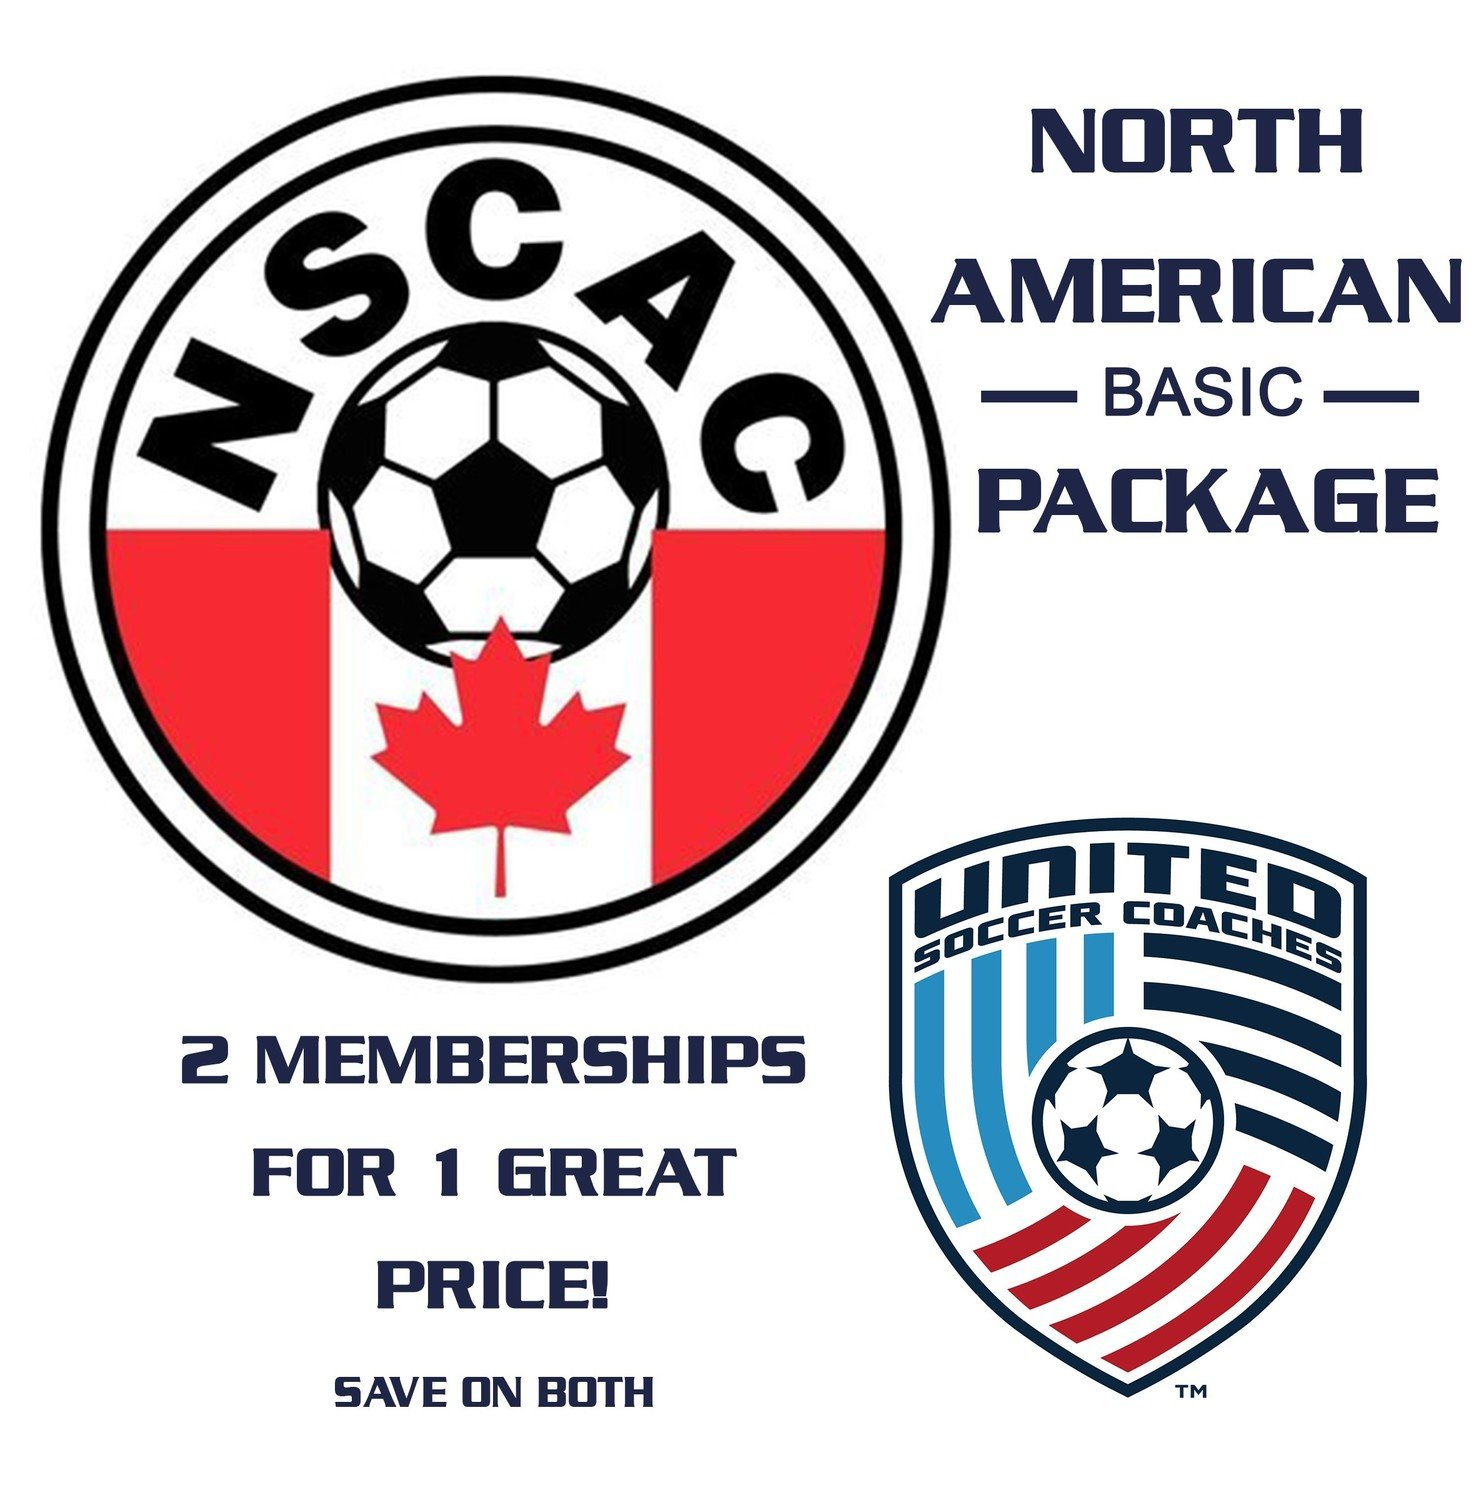 NEW North American Membership offer